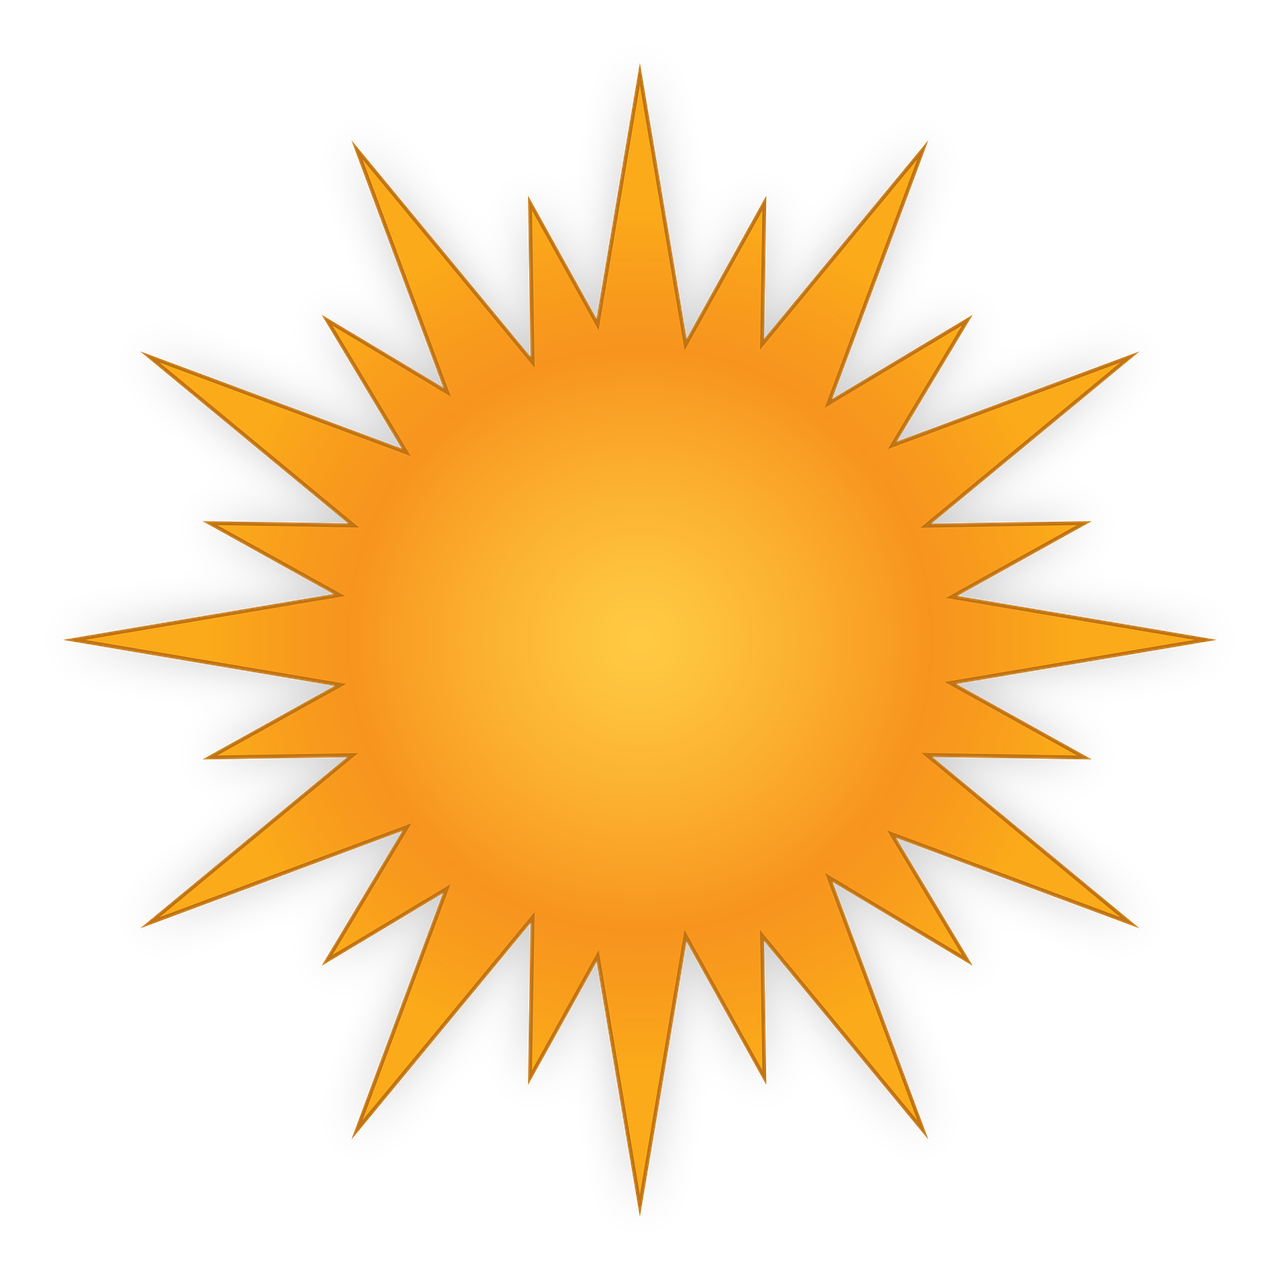 Sun Weather Day Bet Ricon Icon